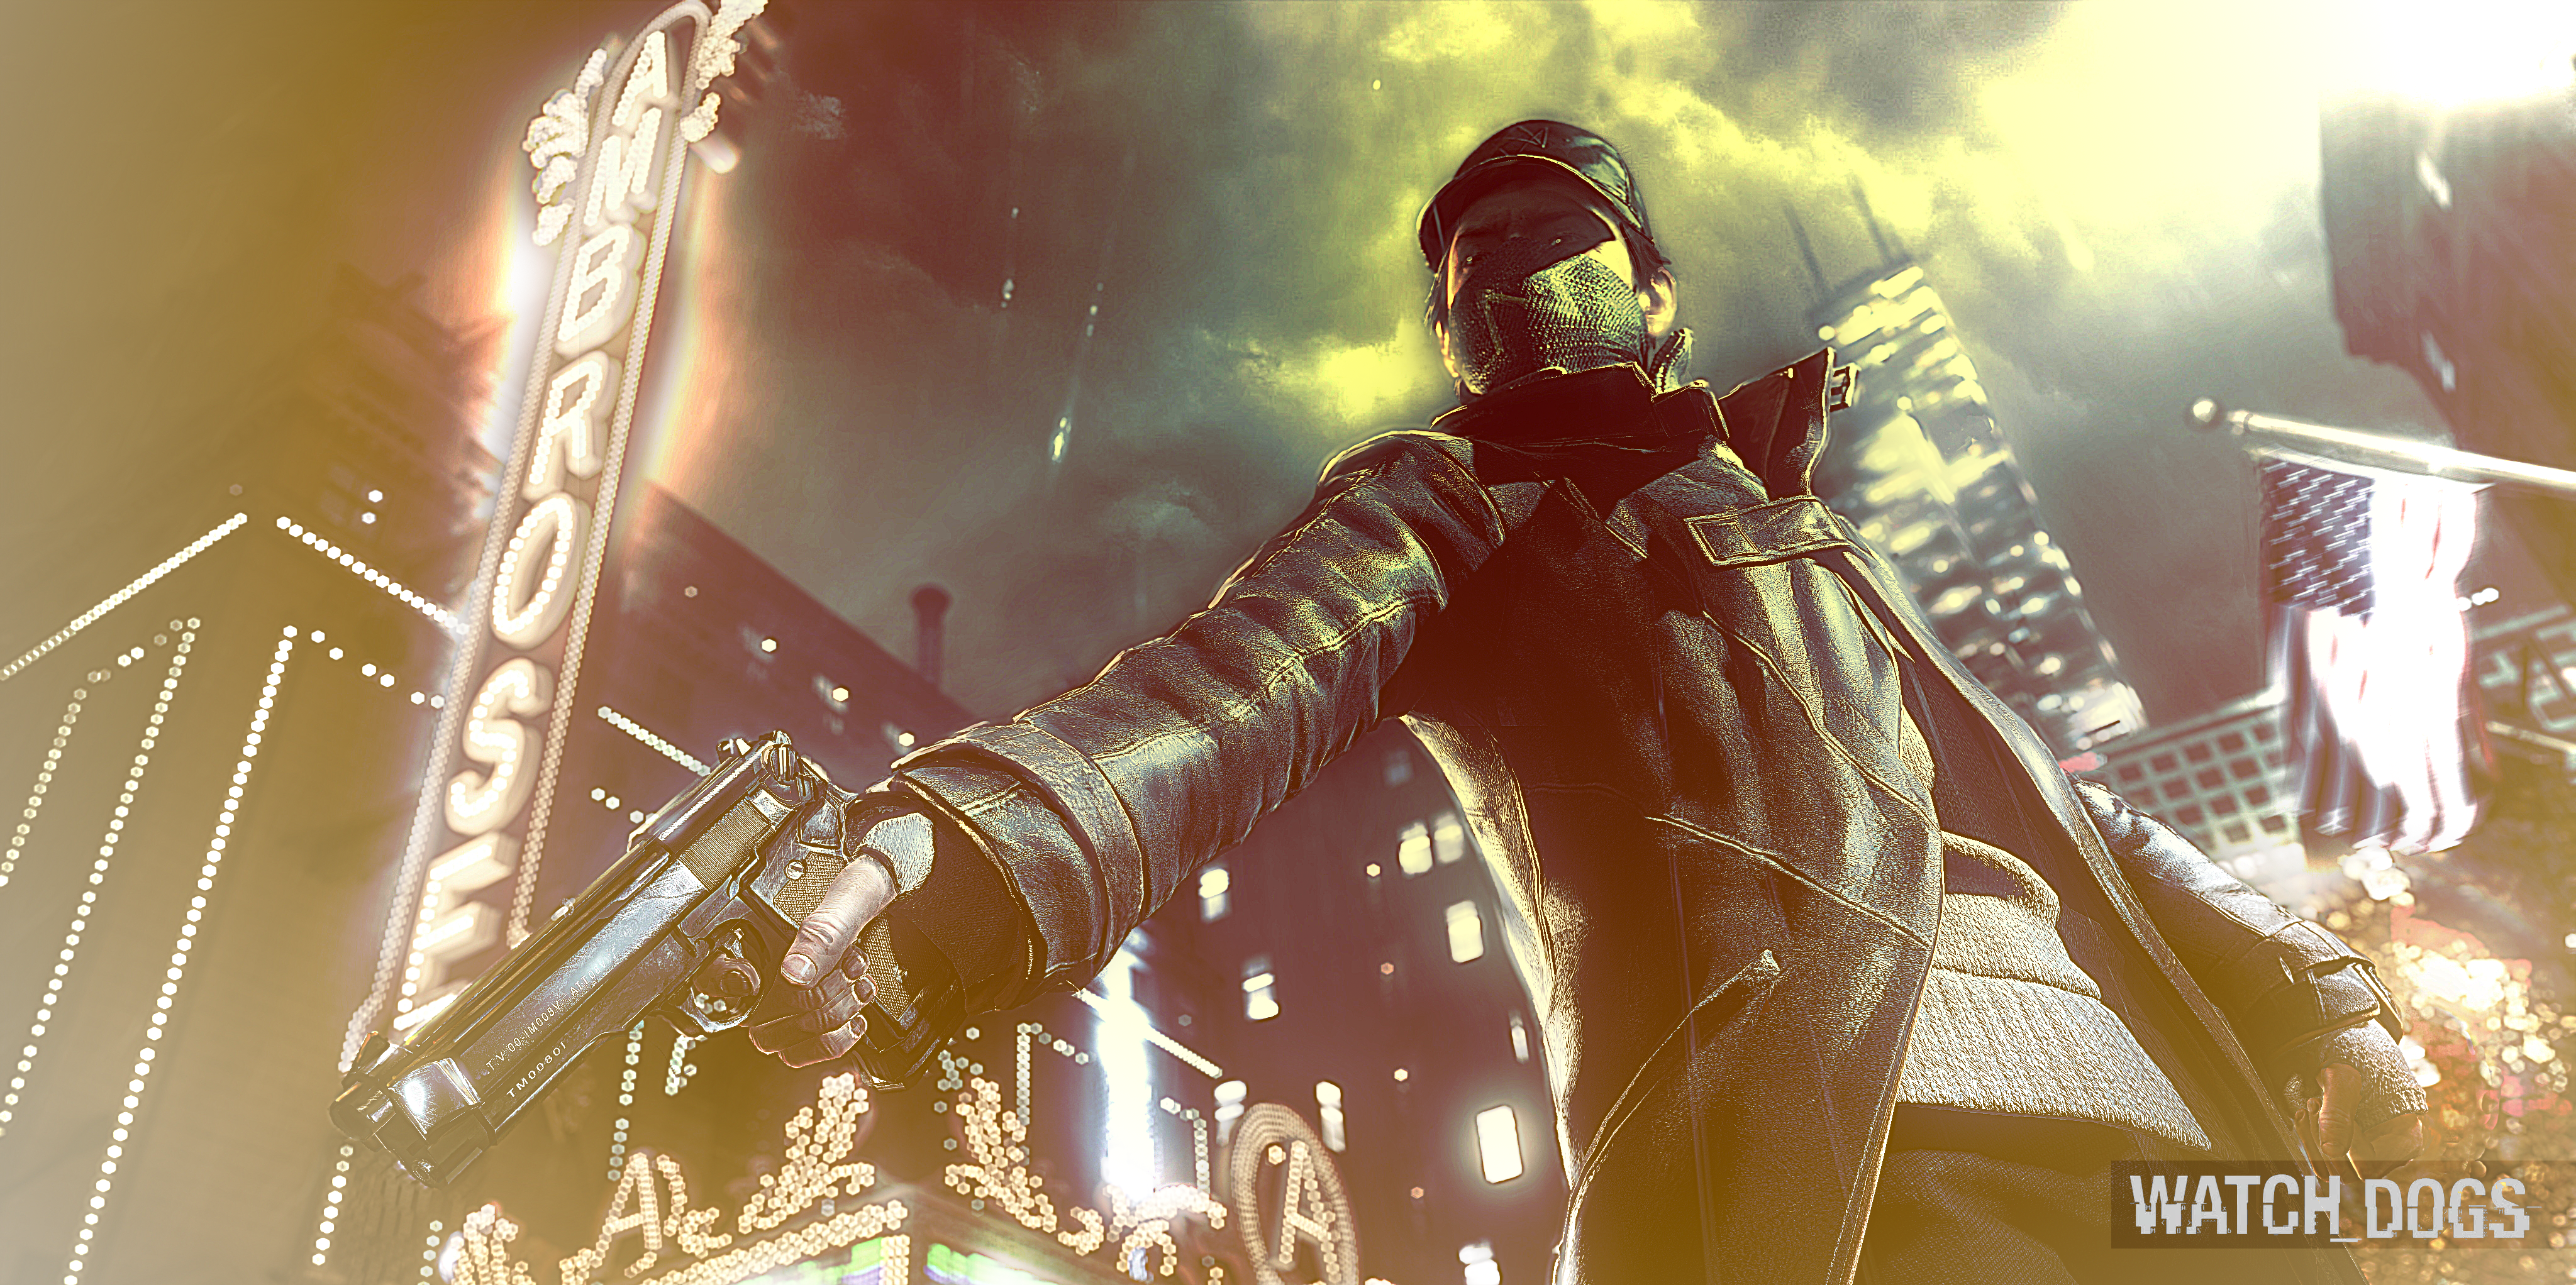 Watch Dogs High Resolution Games Hd Wallpaper For Mobile: Watch Dogs Games High Resolution In High Definition